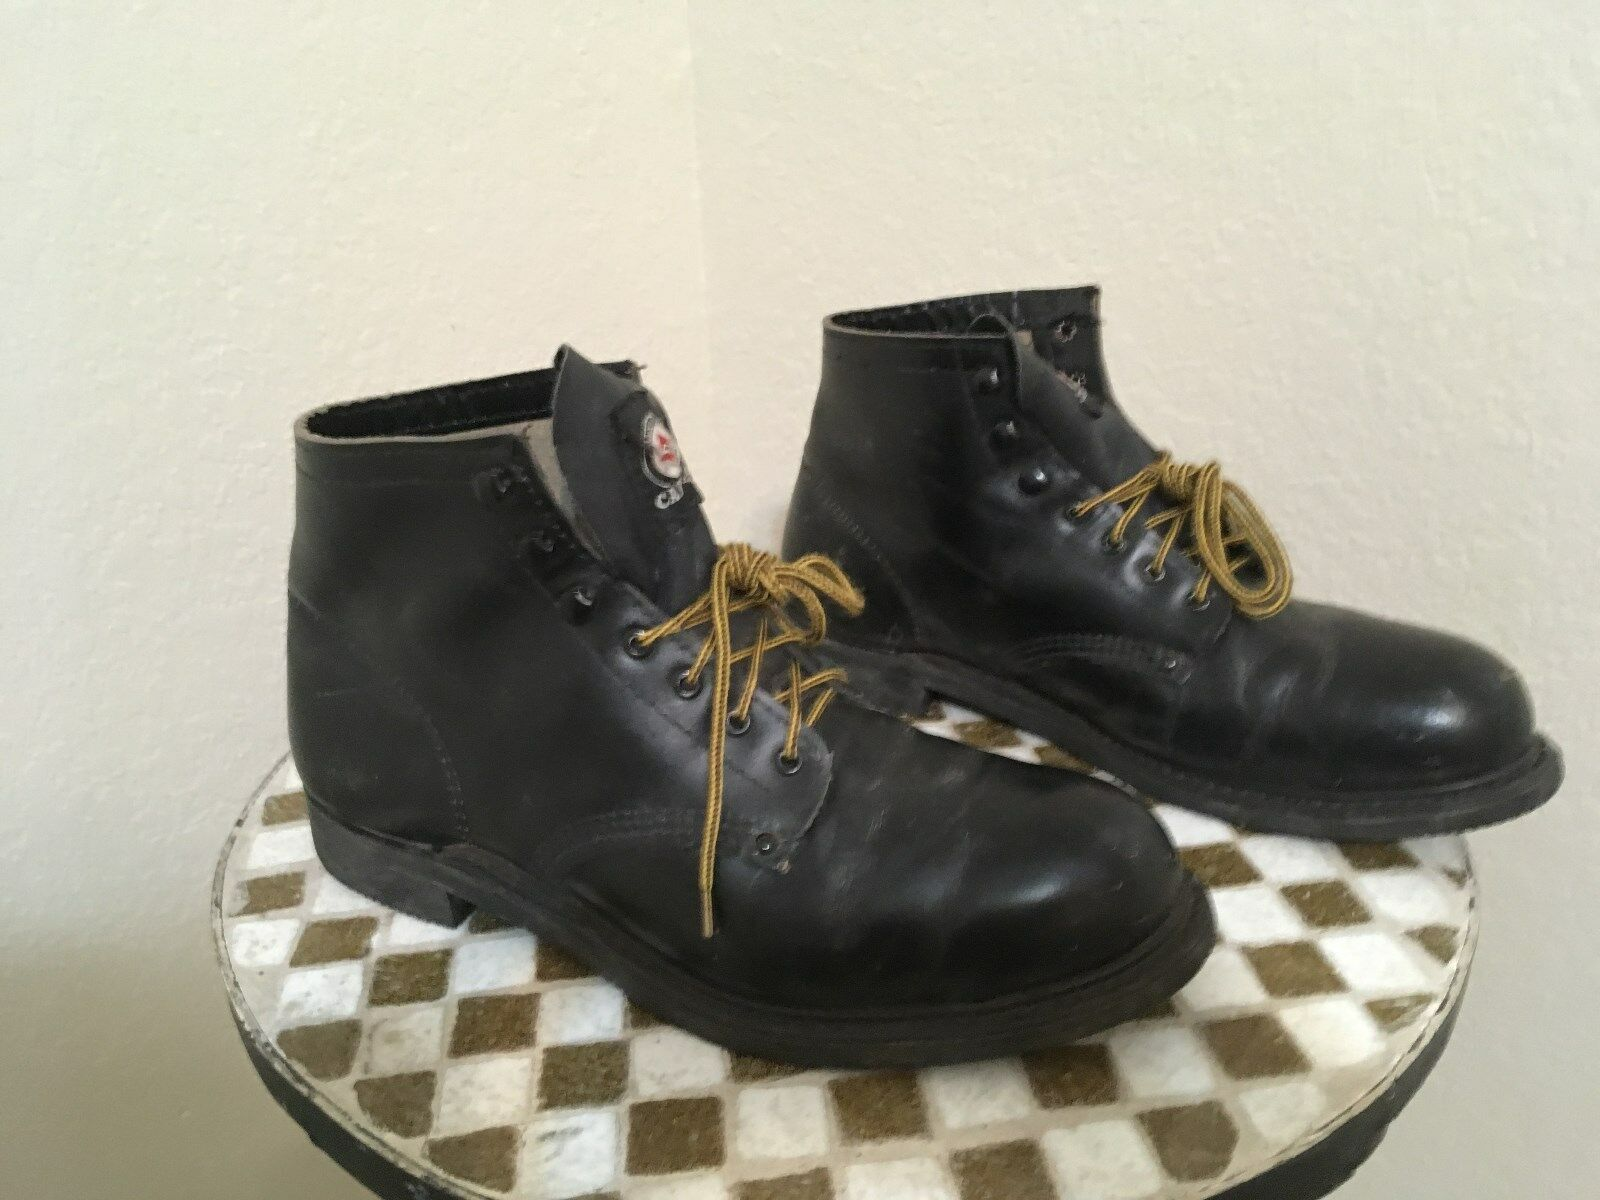 USA RED BIRD STEEL TOE DISTRESSED MOTORCYCLE ANKLE BOSS BOOTS BOOTS BOOTS 10.5 D e7524d